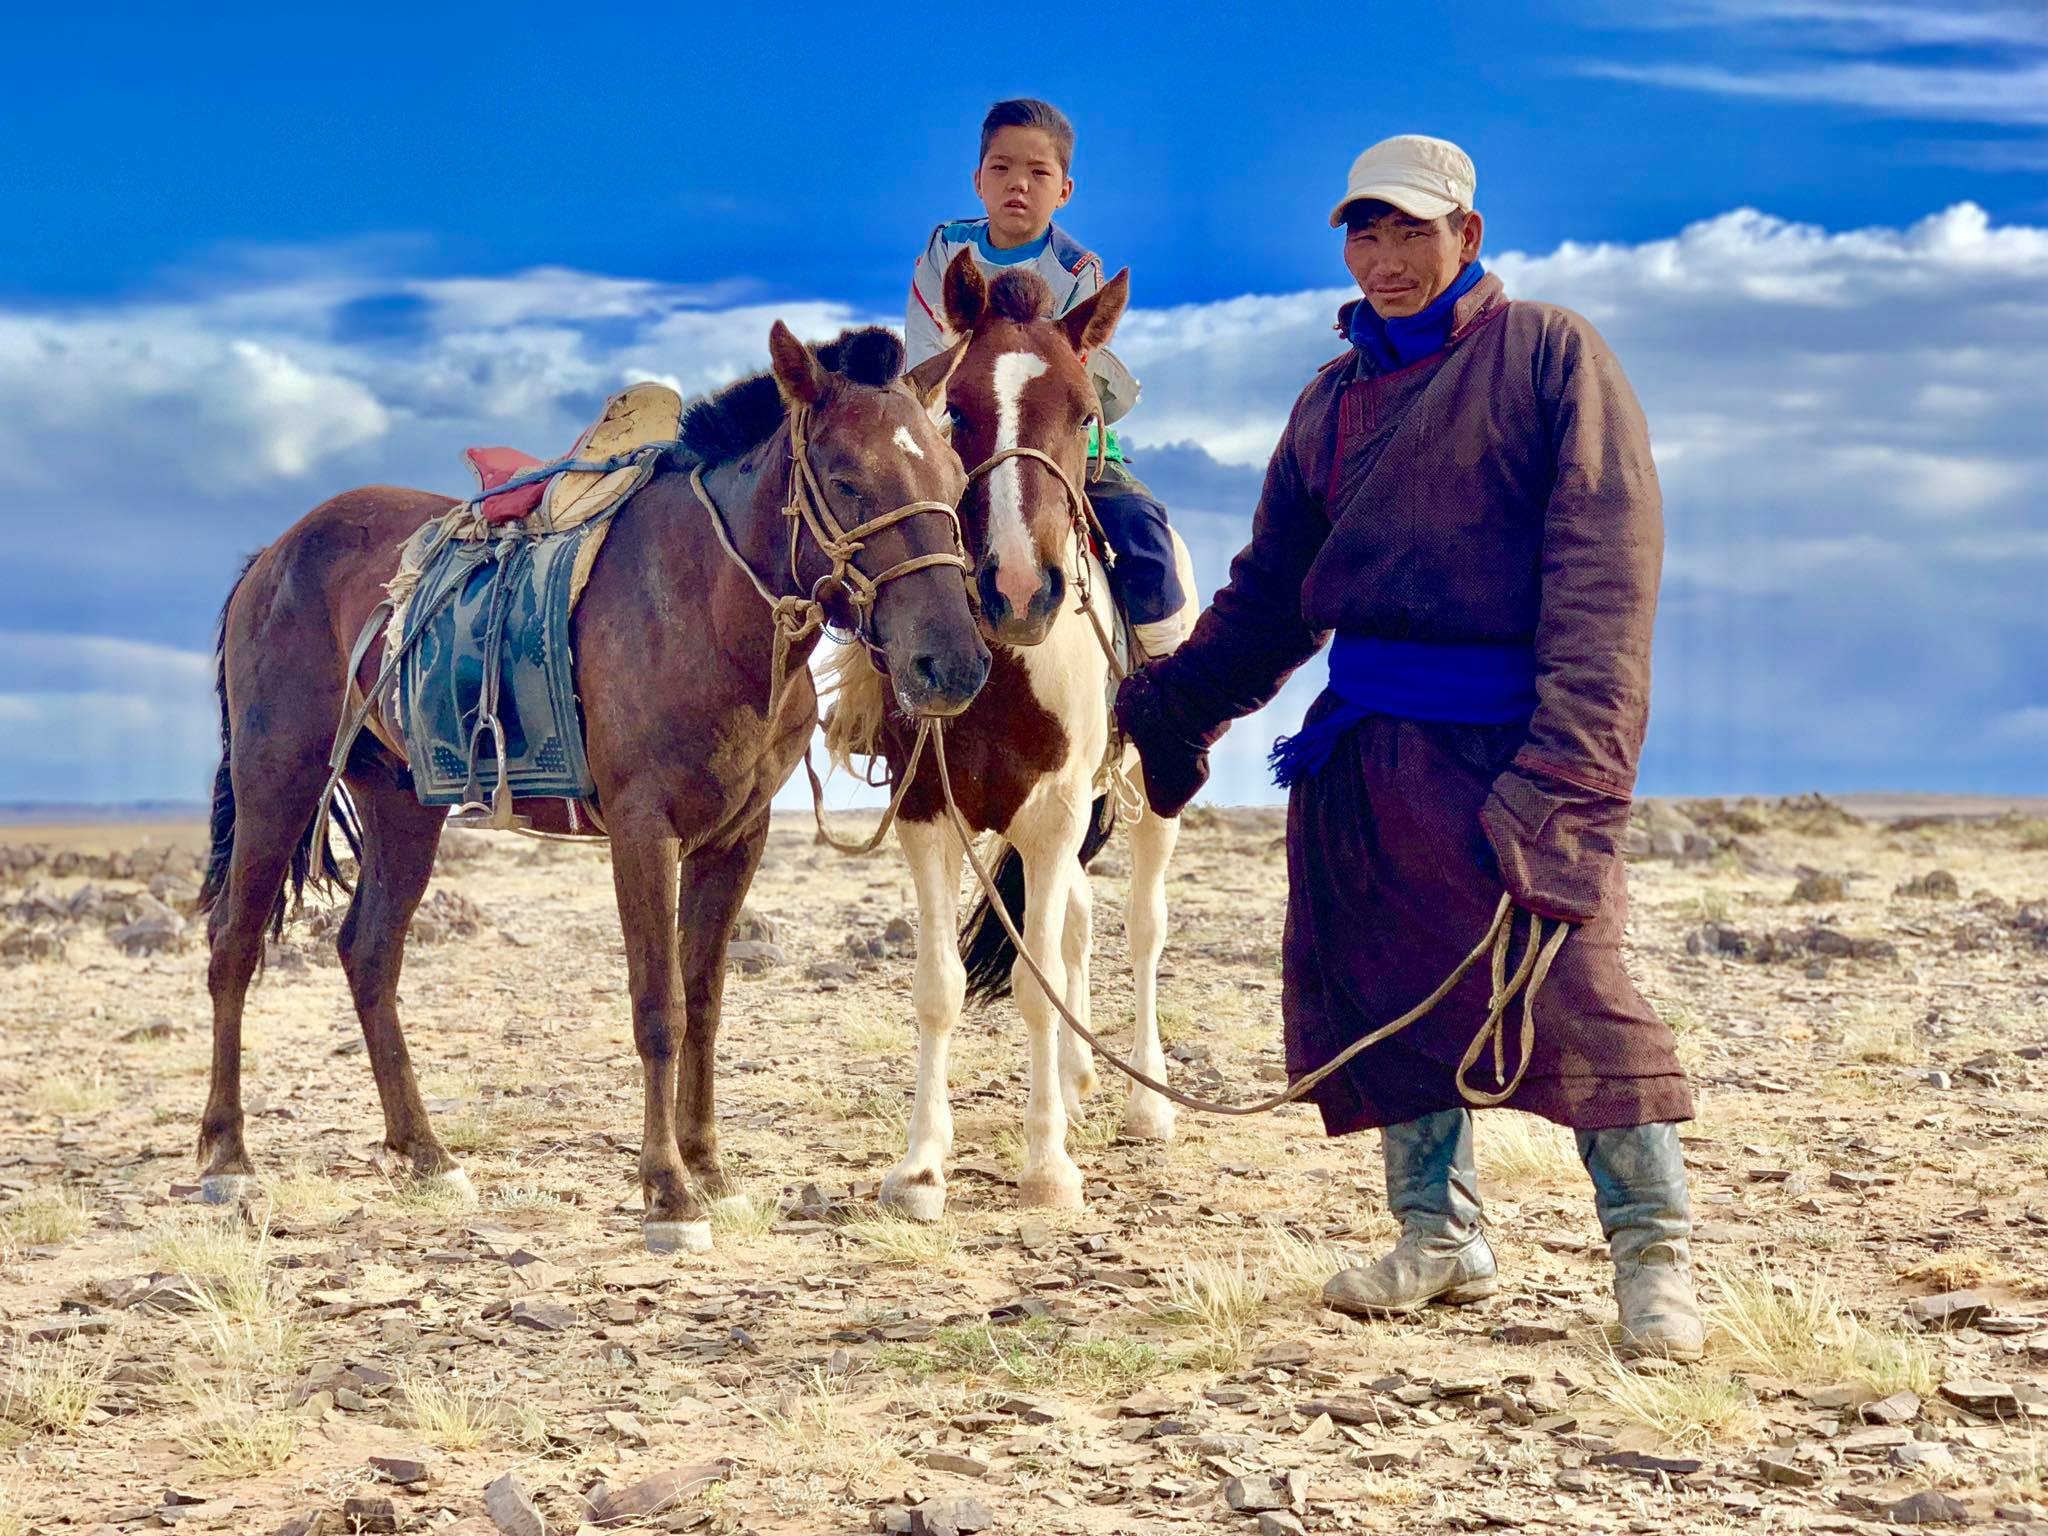 Kach Solo Travels in 2019 One of the hikes during my trip in Gobi desert29.jpg